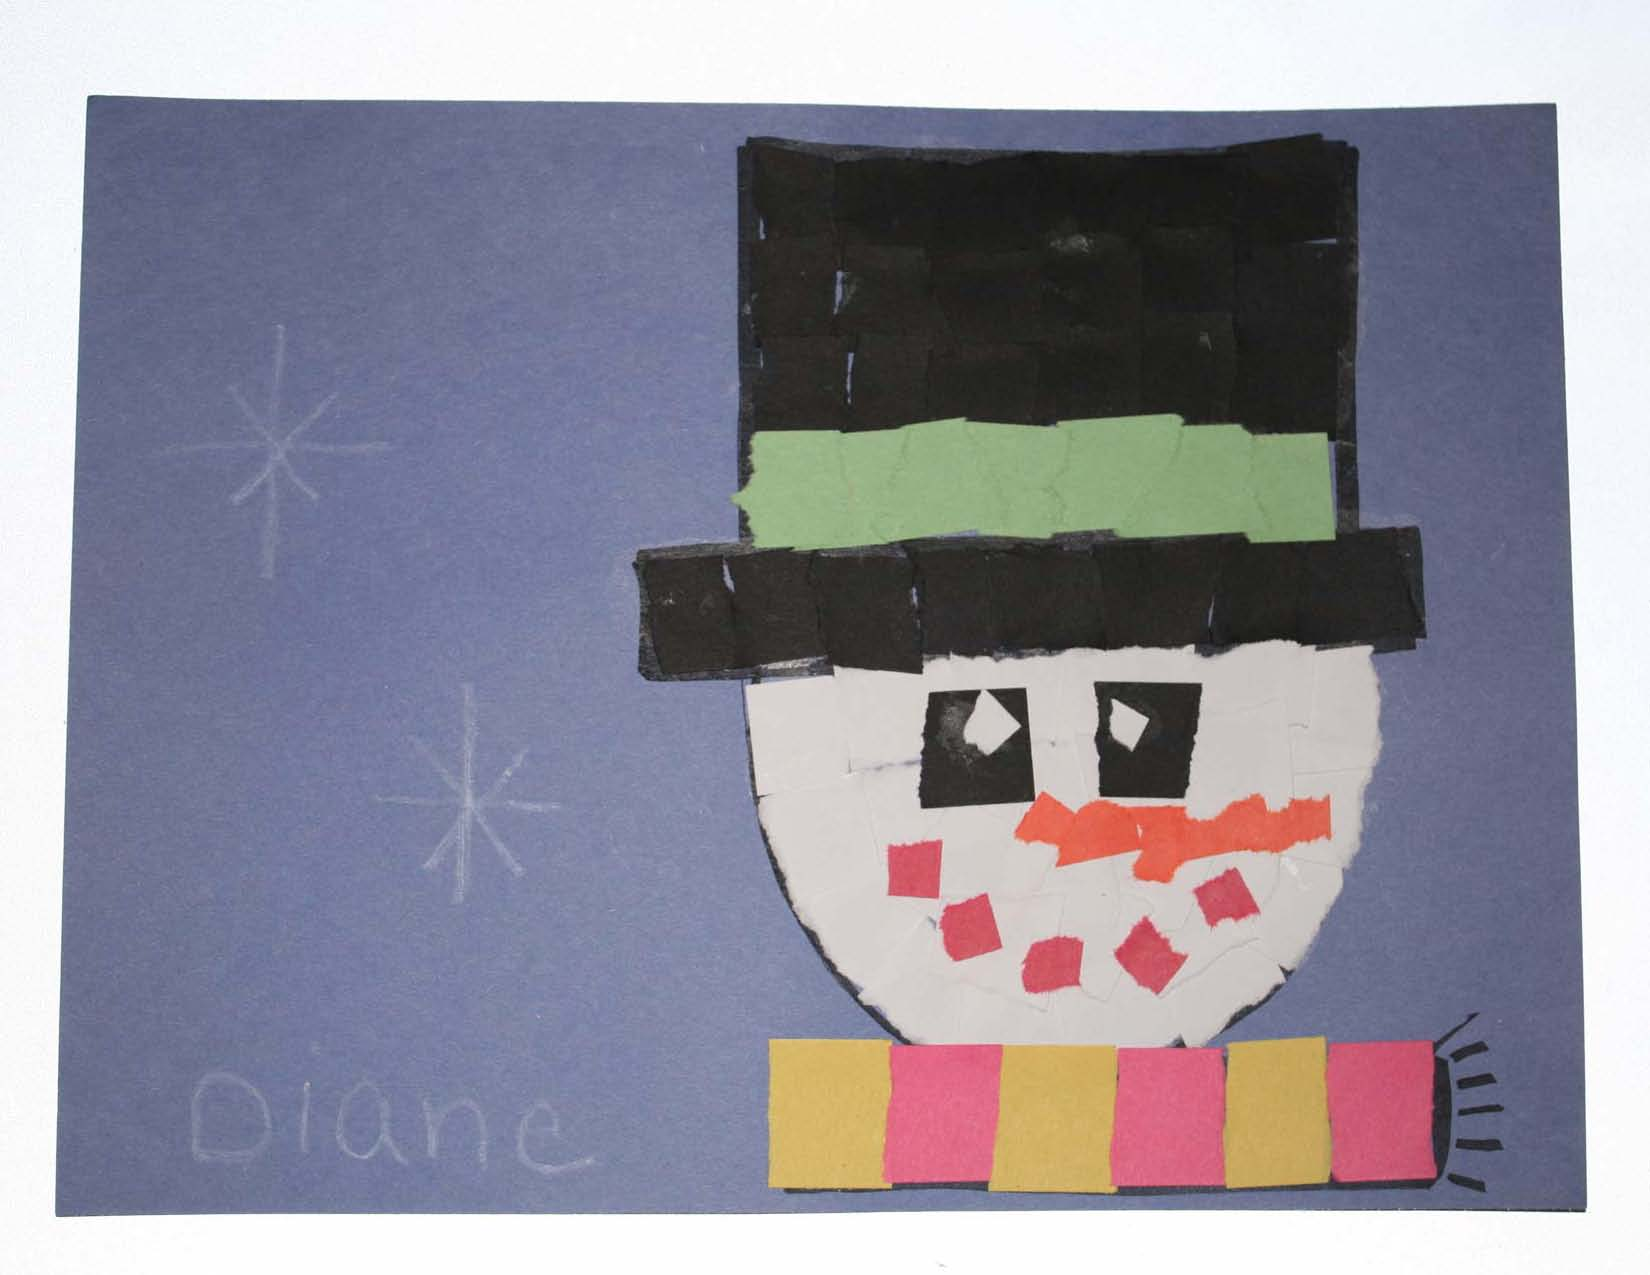 snowman crafts, snowman activities, snowman bulletin boards, rip and tear activities, recycled art, recycled craft projects, december bulletin boards, january bulletin boards, snowman bulletin boards, name snowmen, name activities, name crafts